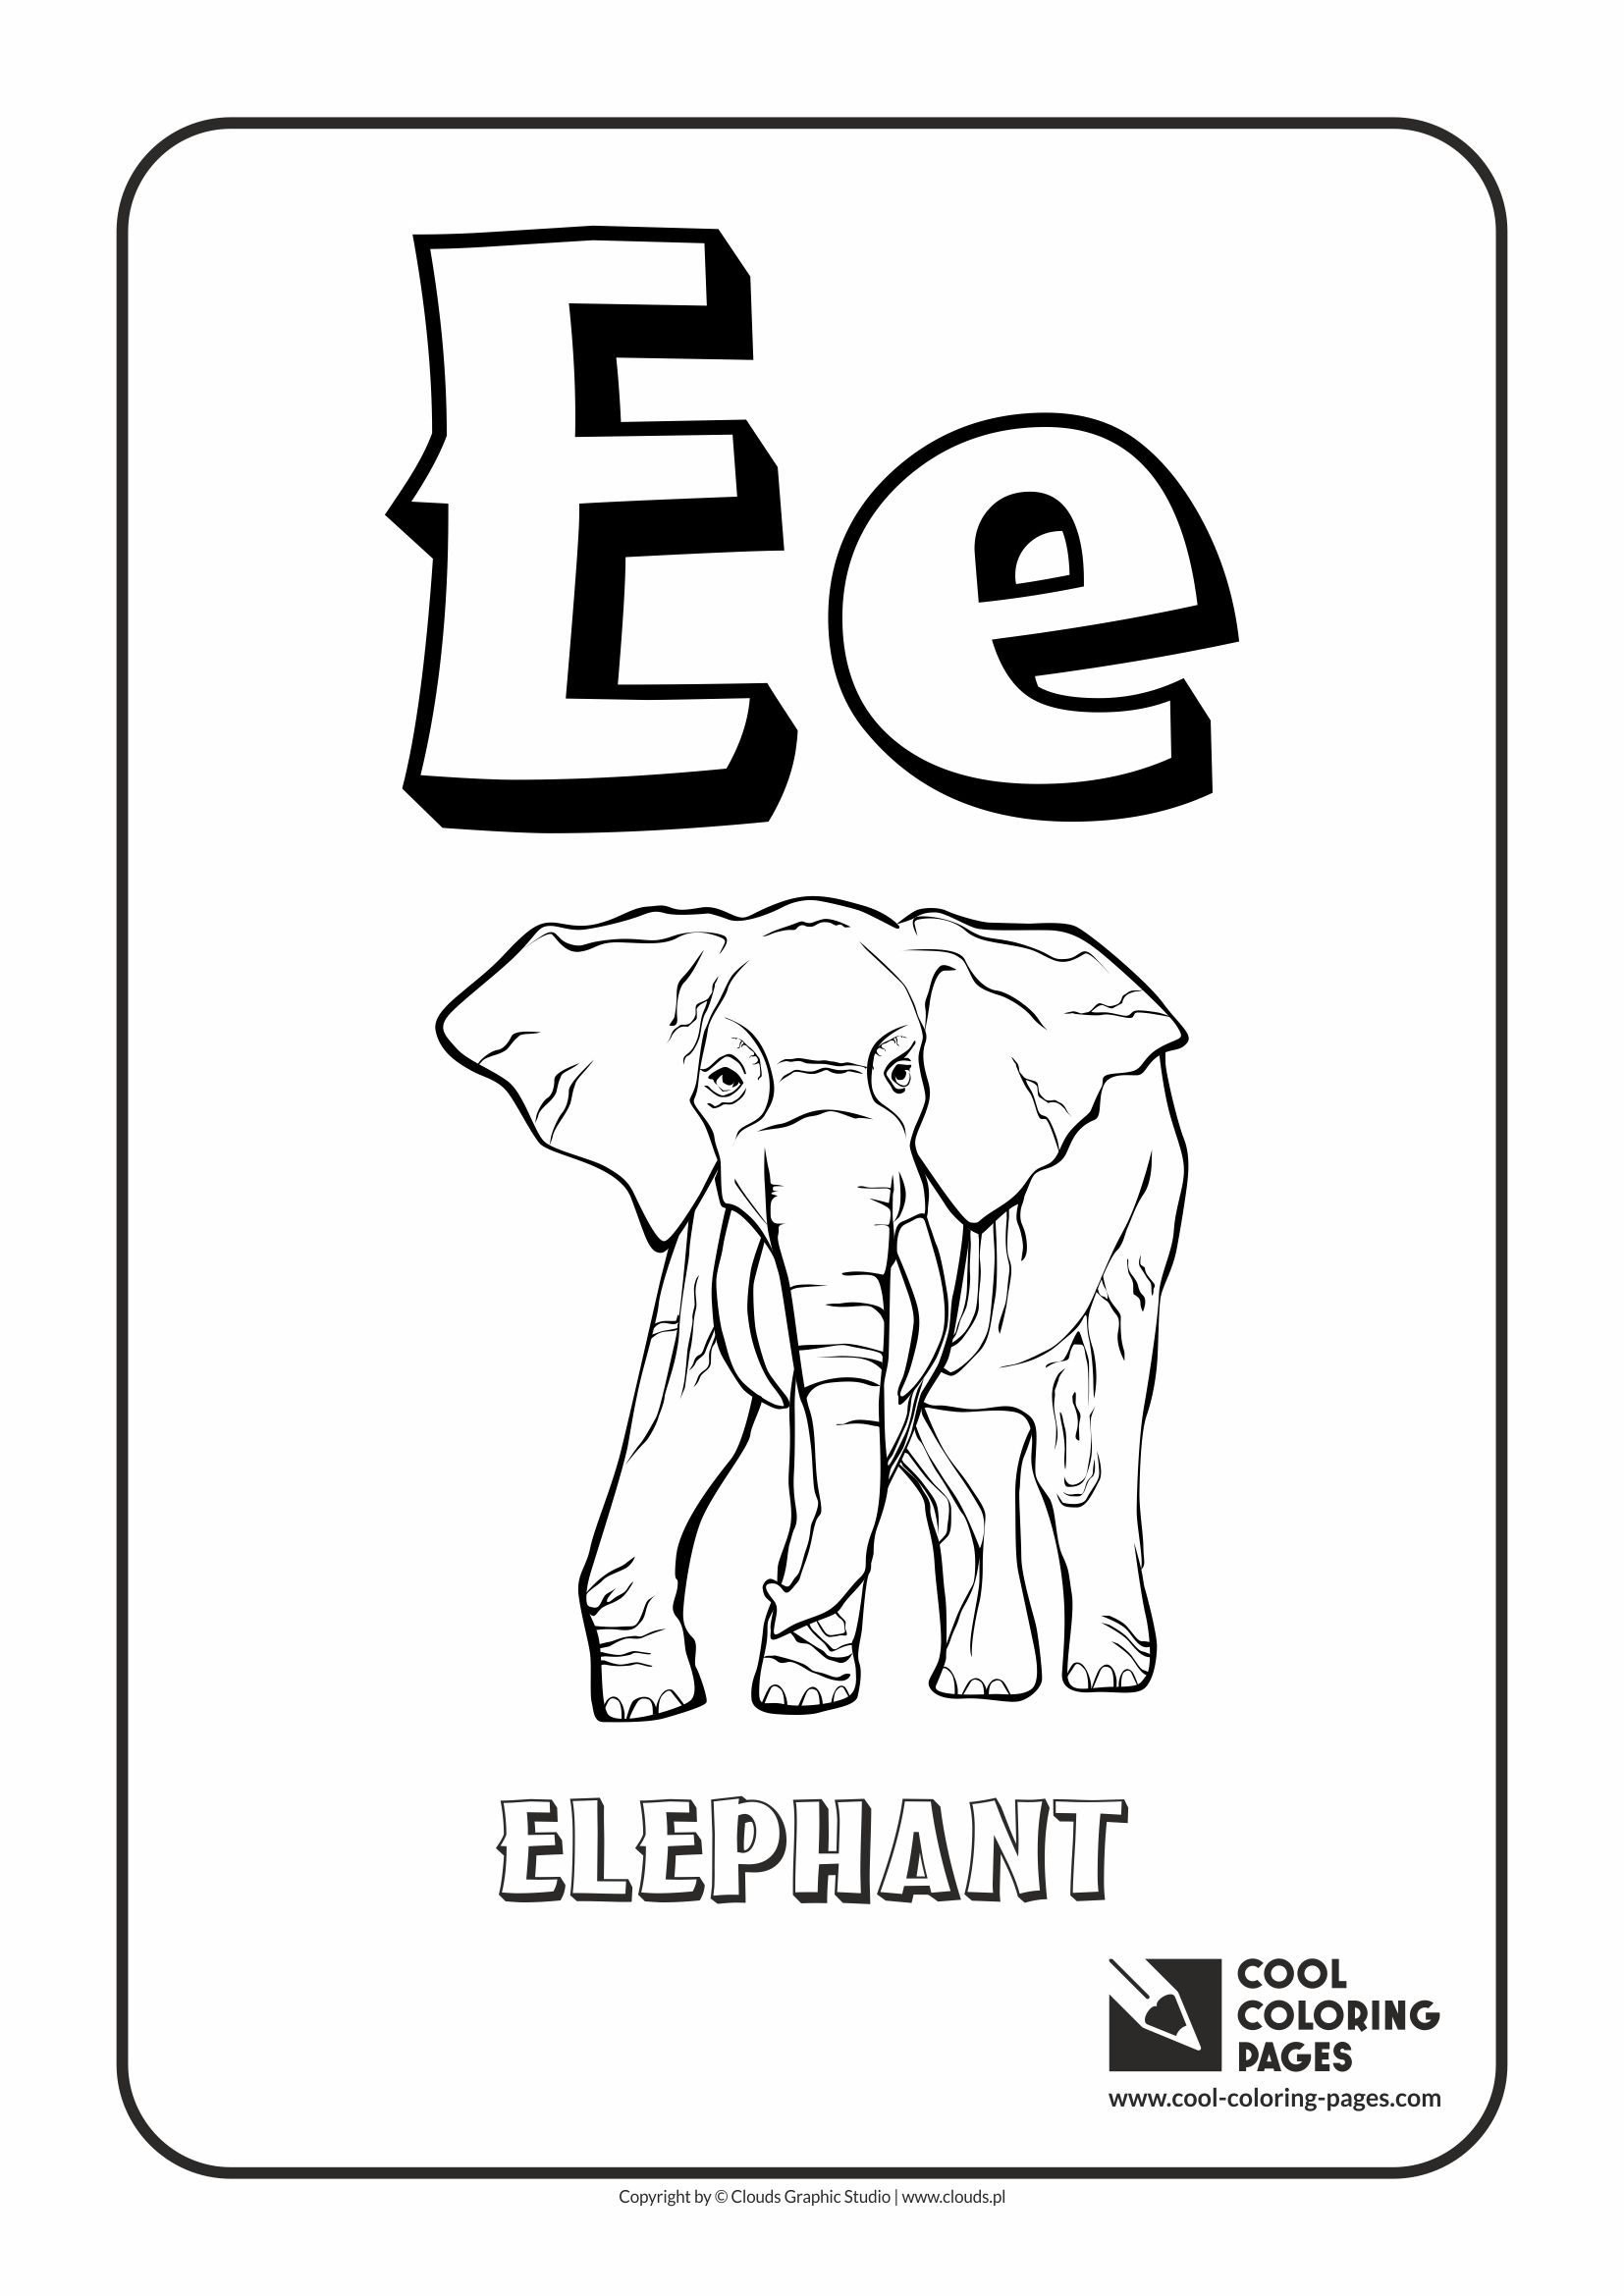 cool coloring pages alphabet letter e coloring page with letter e